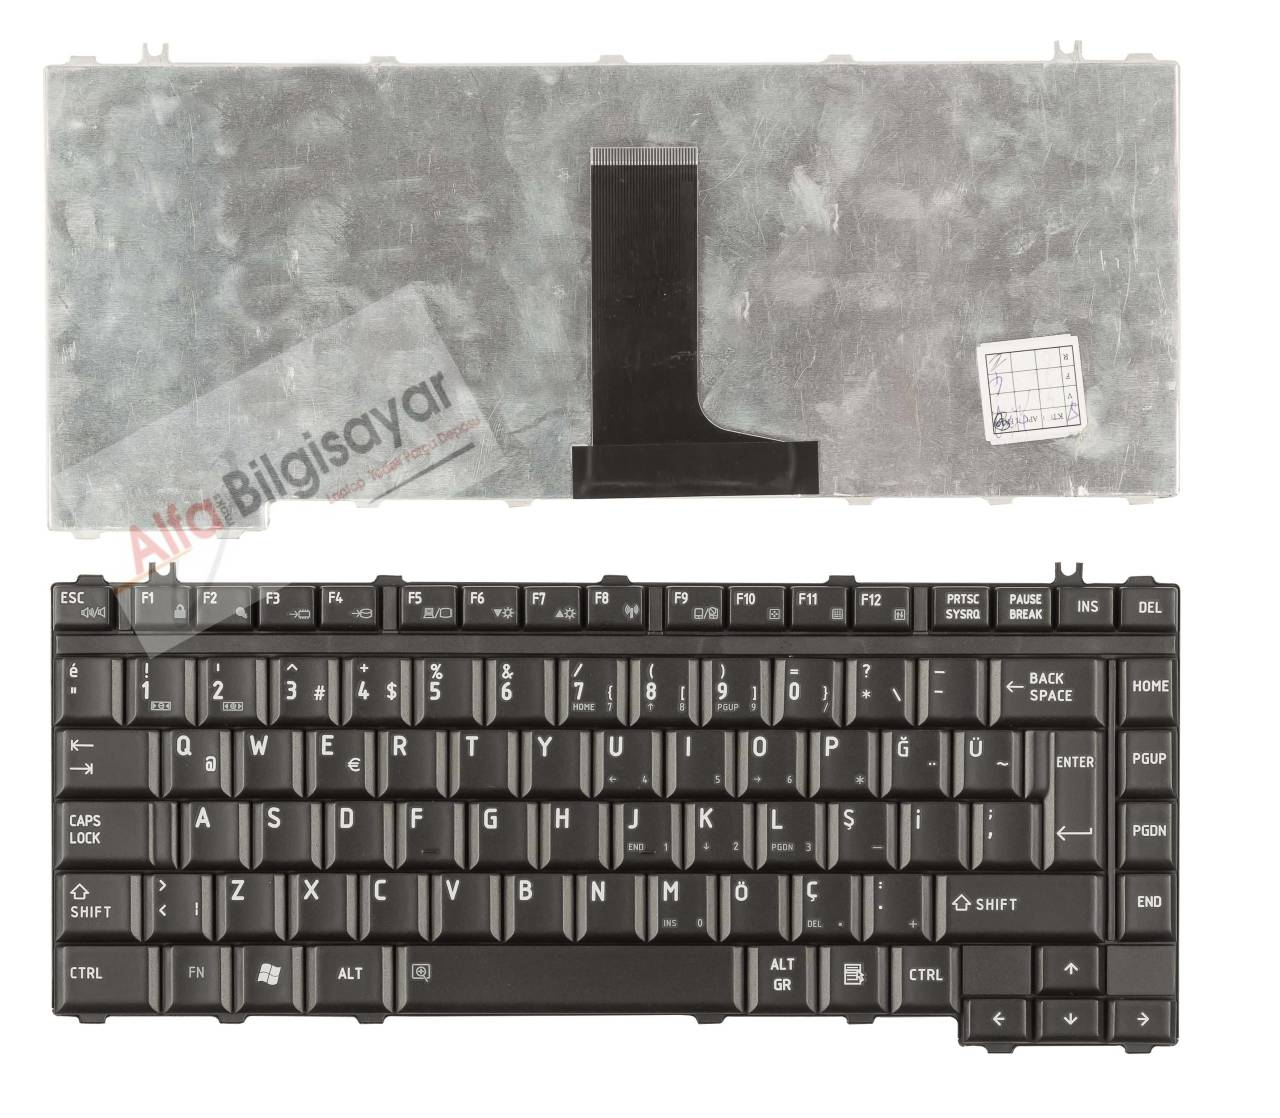 Https St1myideasoftcom Shop Ah 15 Myassets Products 002 6 Lenovo Thinkpad Battery 29 9cell Comp With Tp X220 A300 Matrevision1542467999